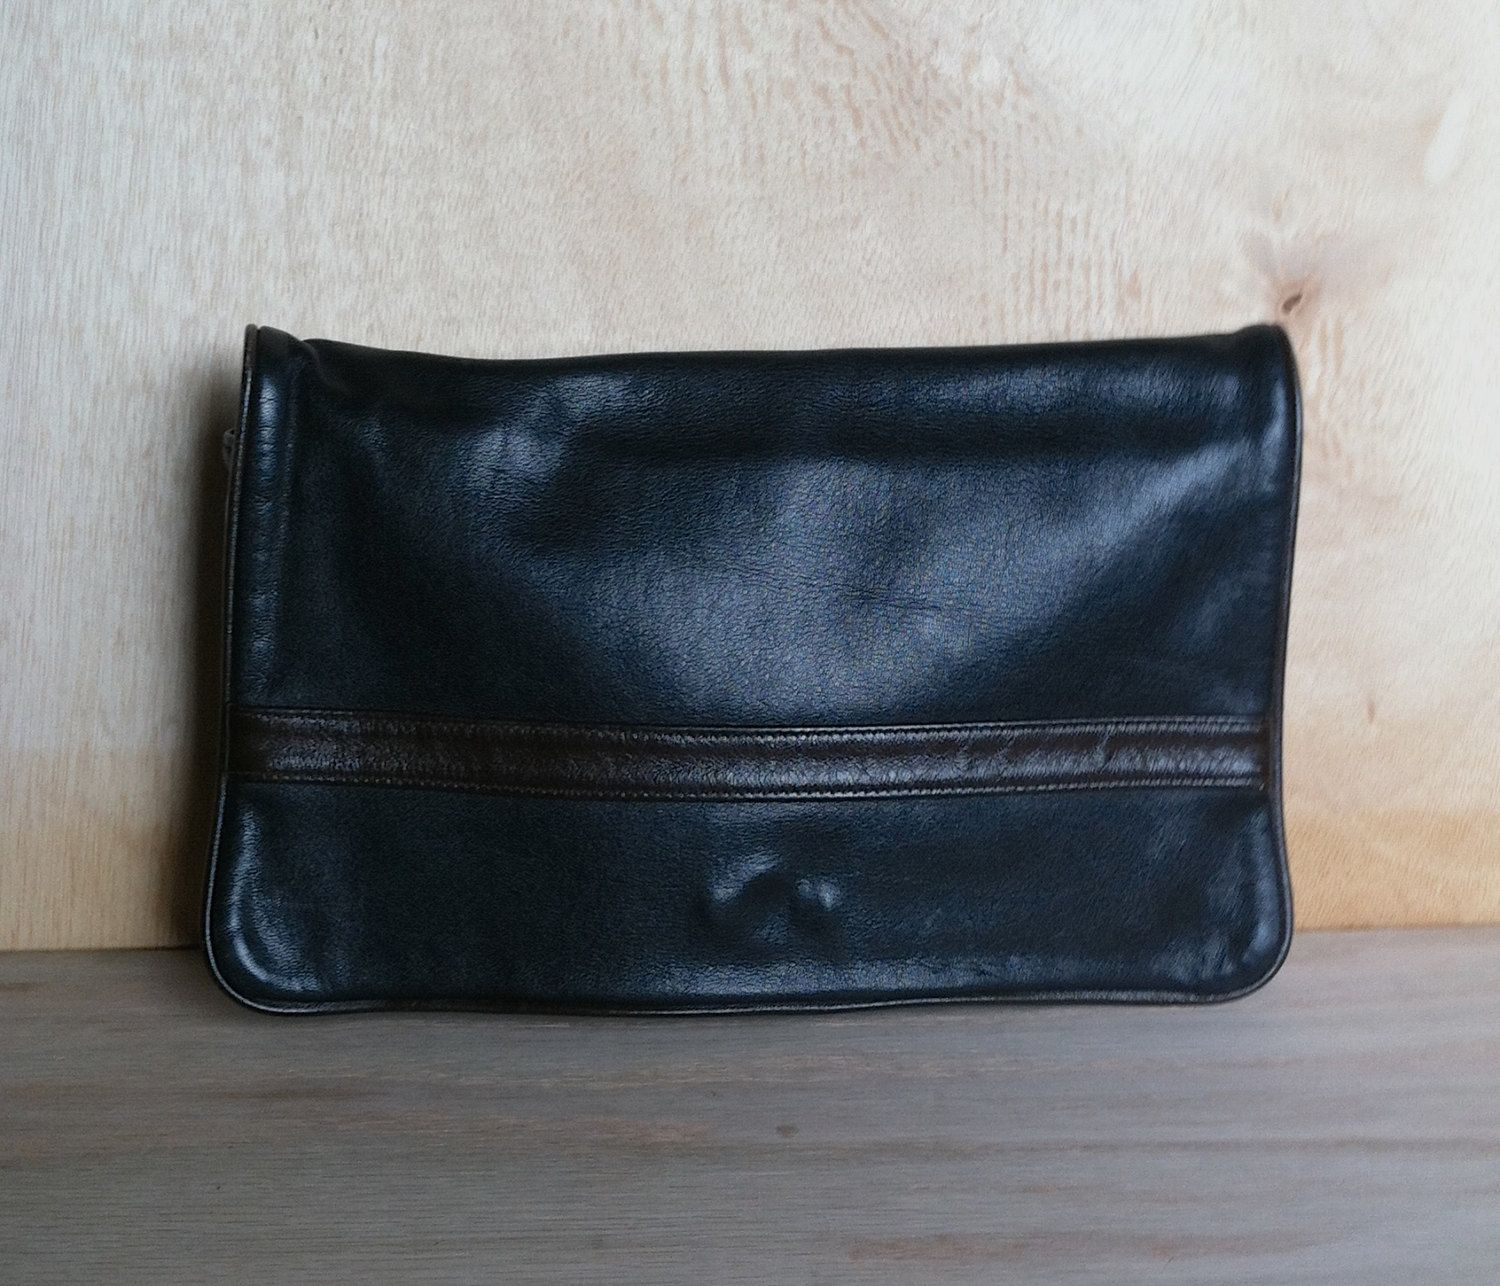 Vintage 1980s Black and Brown Leather Clutch Purse Hand bag by ForestaVintage on Etsy